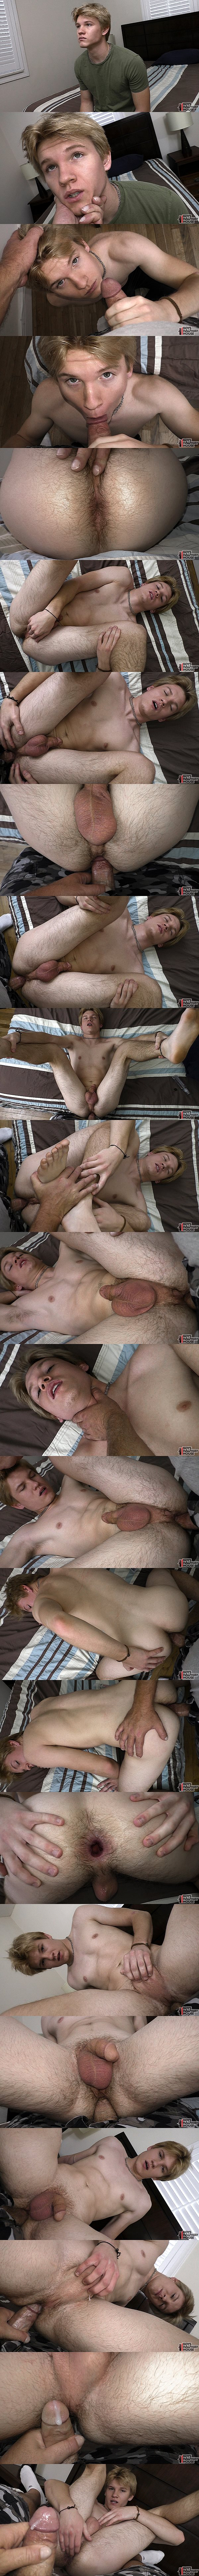 The house manager barebacks cute blond straight jock Tyler Blue's tight bubble ass before he creampies Tyler in a POV scene in Paying His Dues at Boyshalfwayhouse 01